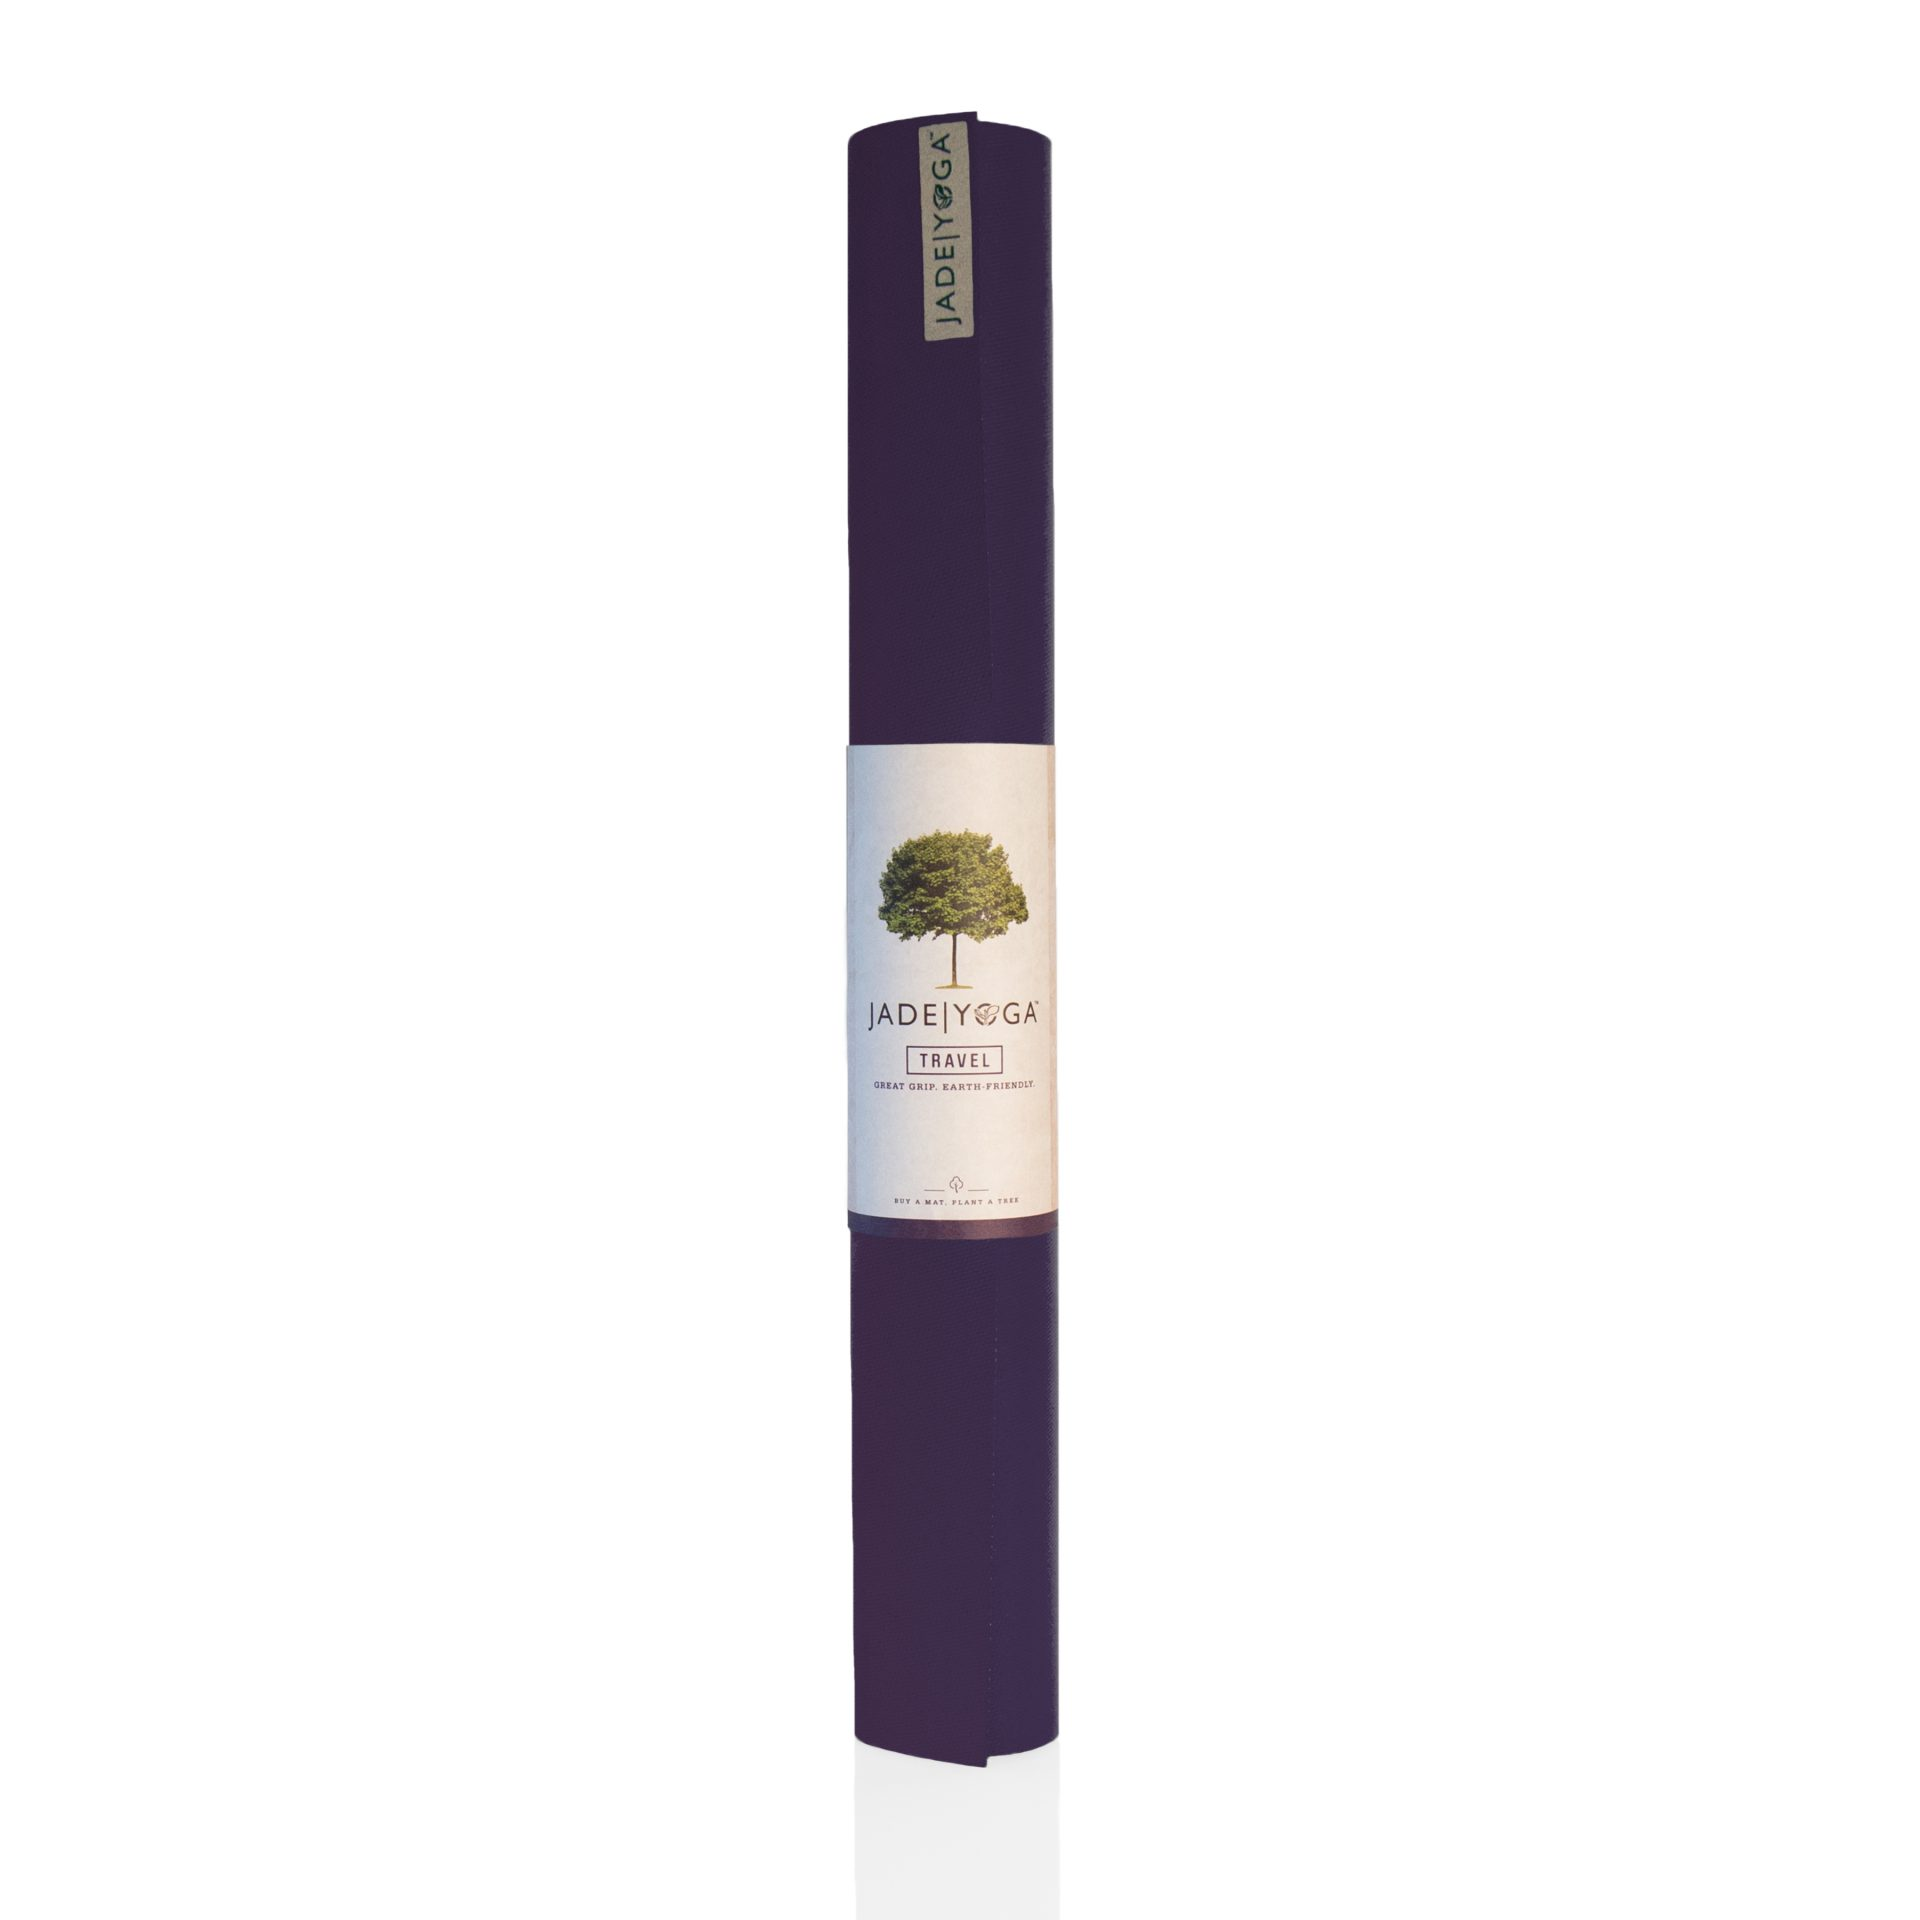 Jade Travel Yoga Mat Purple